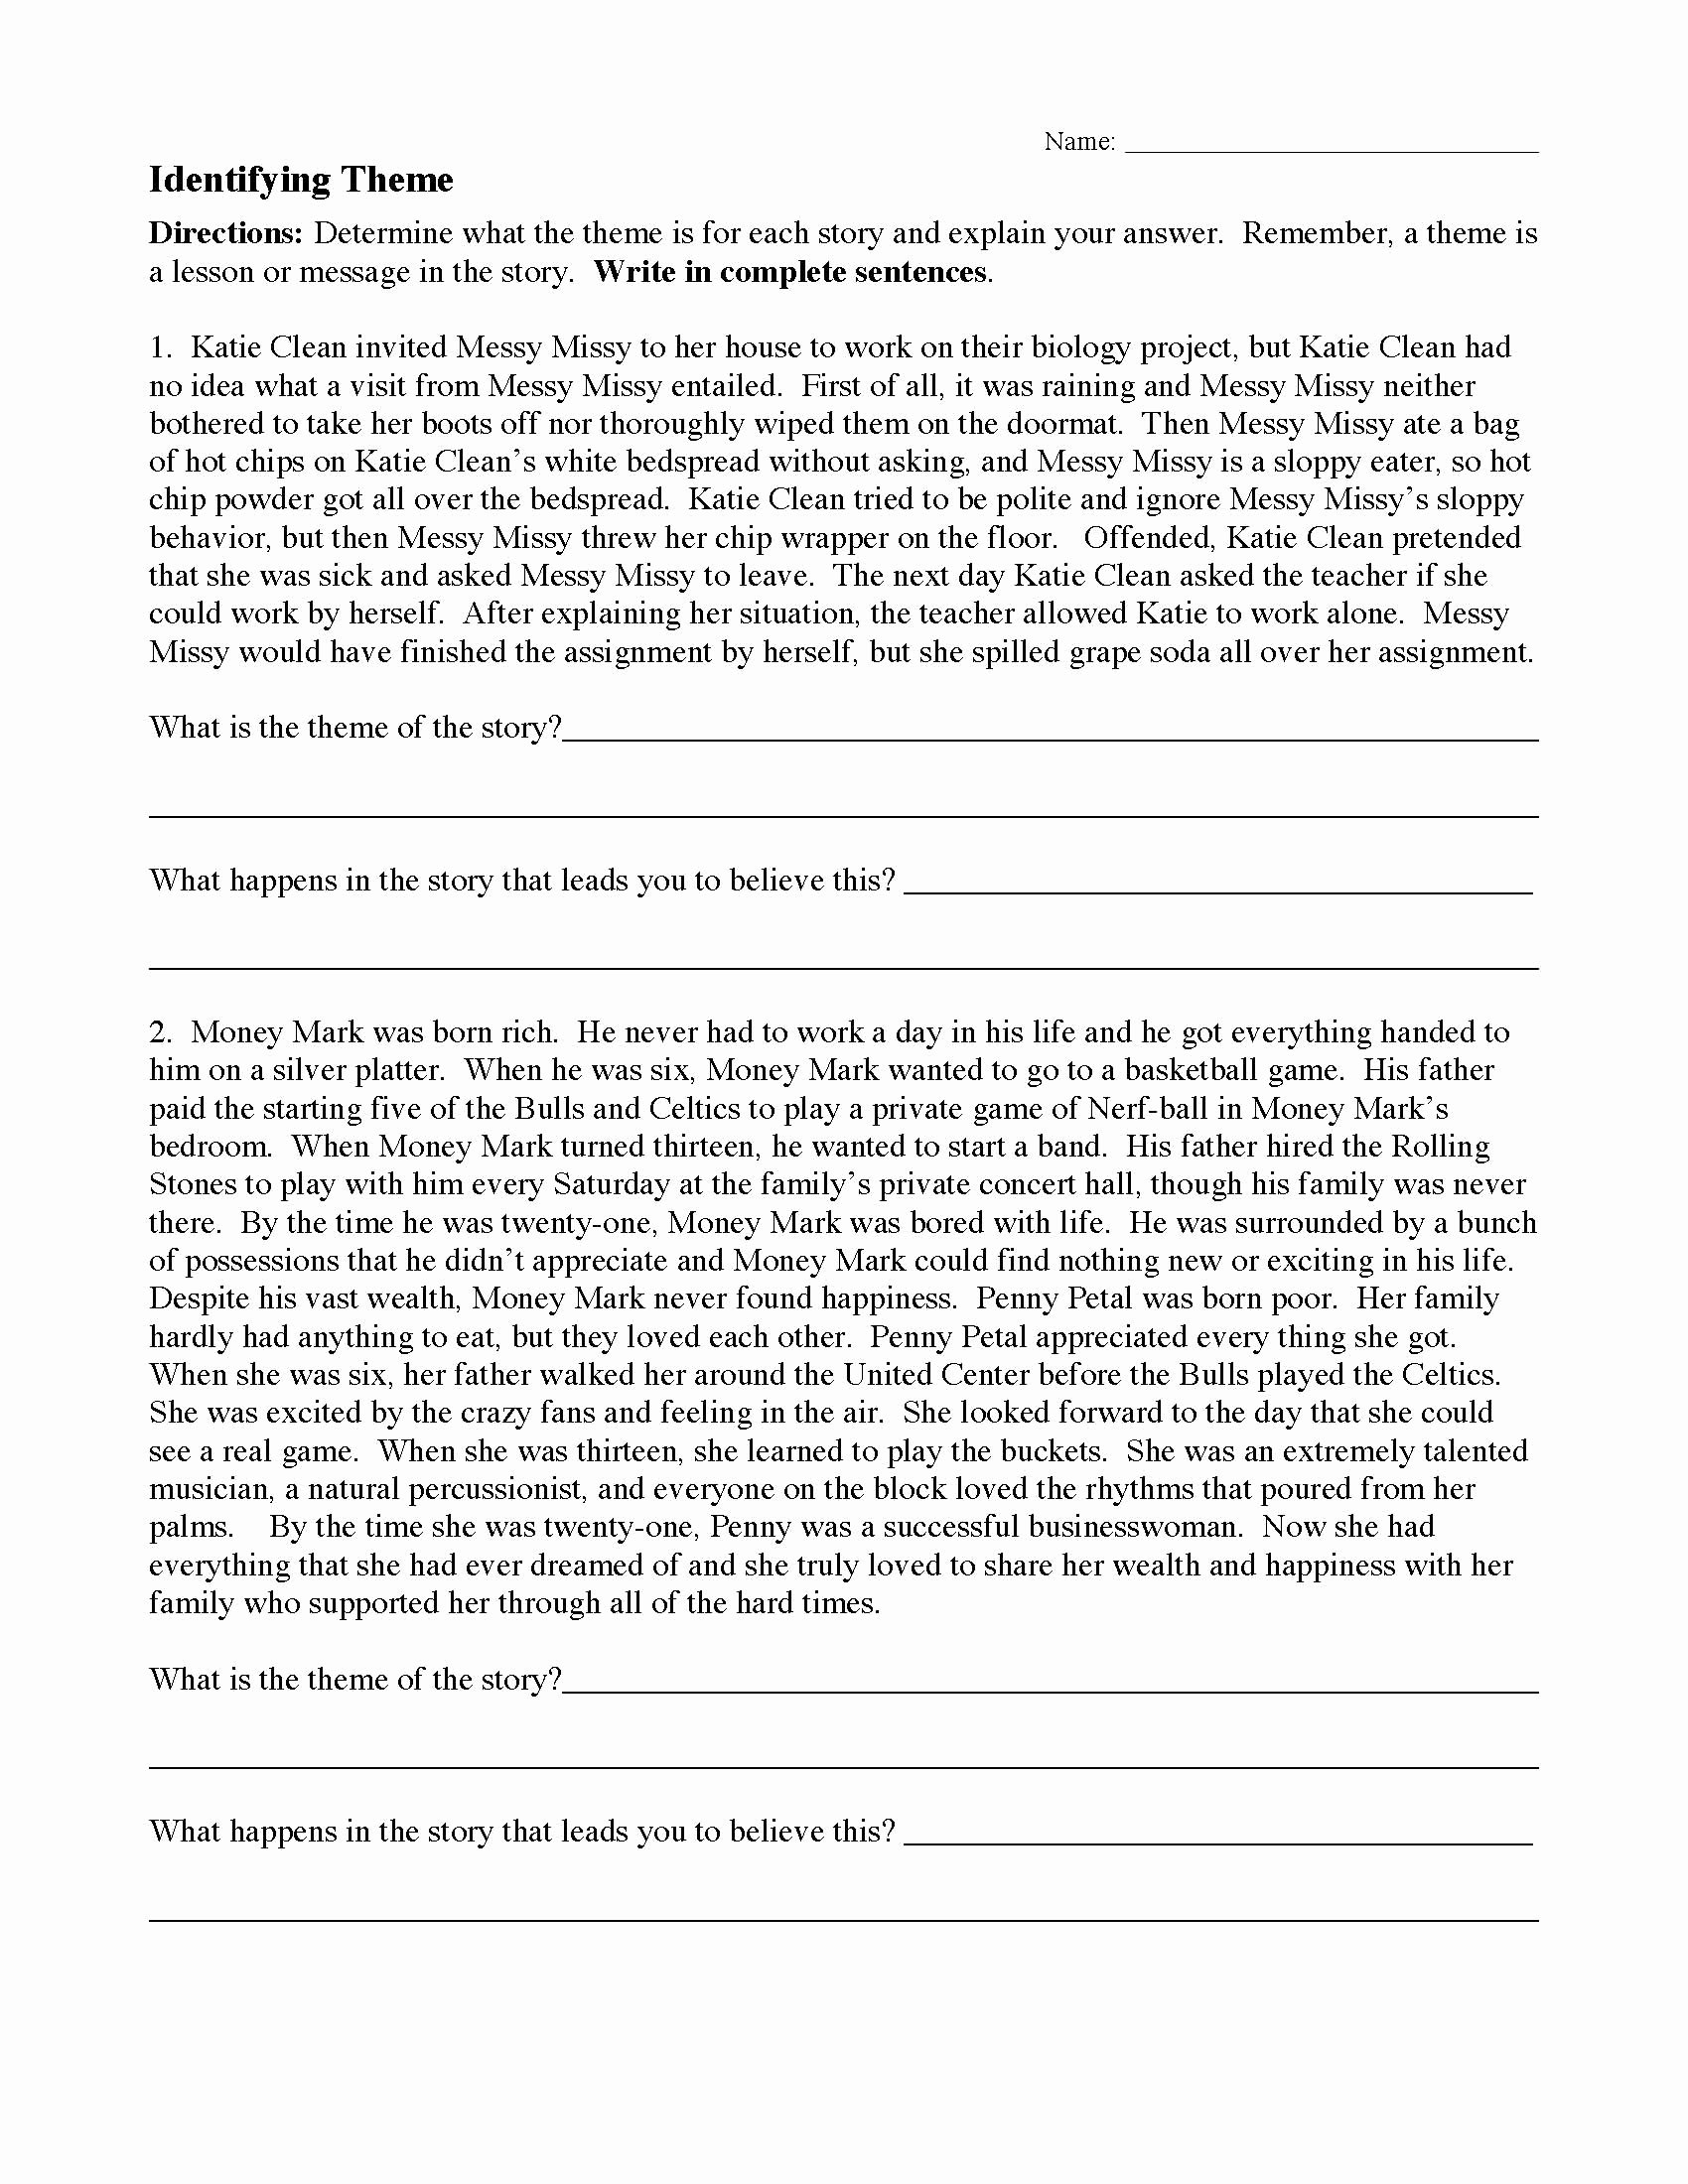 Main Idea and theme Worksheets Ideas theme or Author S Message Worksheets